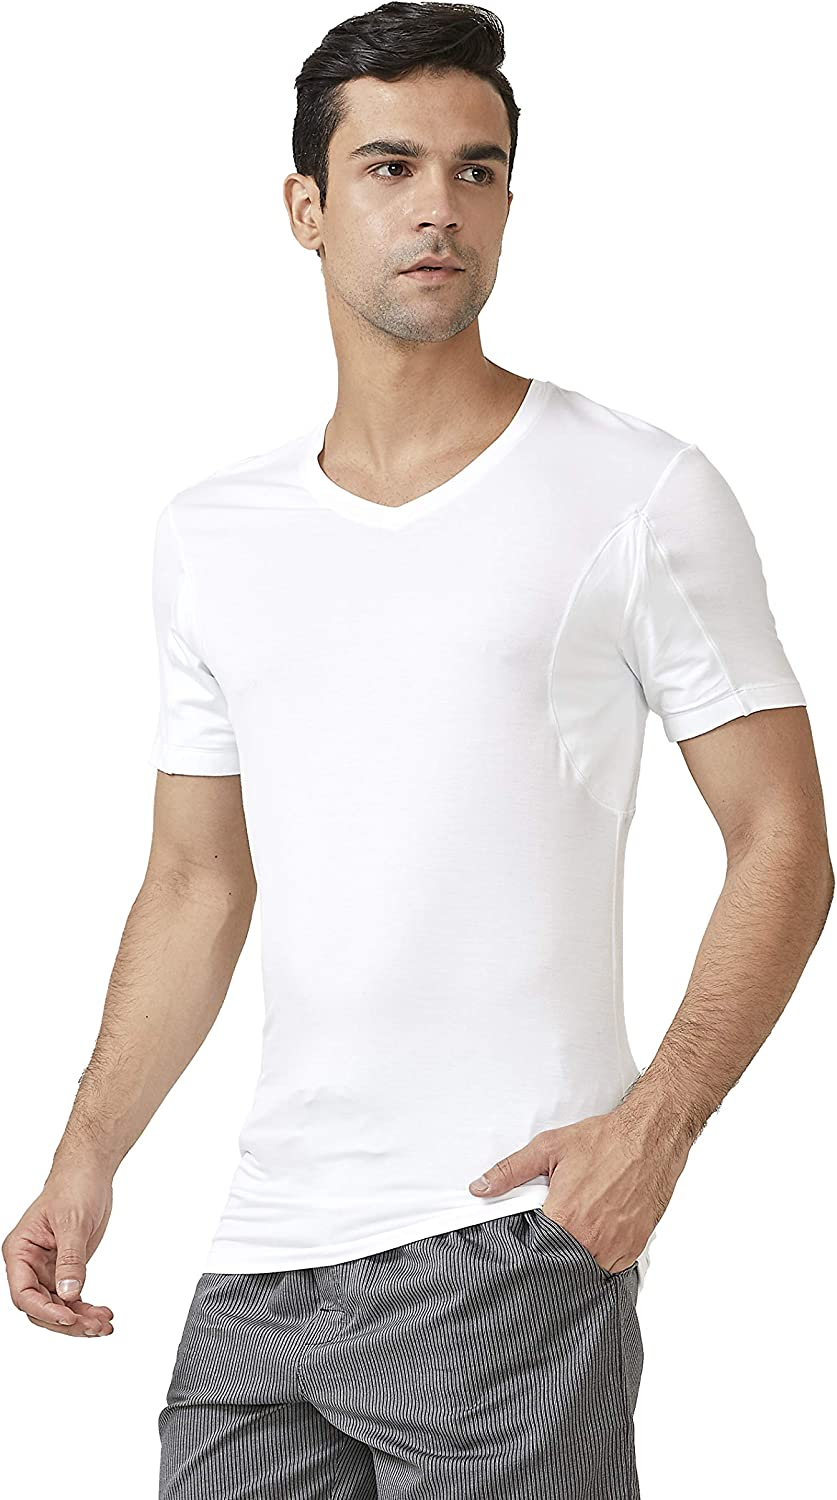 DAVID ARCHY 2 Pack Sweat Proof Undershirt for Men Soft Bamboo Rayon V-Neck Armpit Odor Defense T-Shirt Short Sleeve Tee at  Men's Clothing store